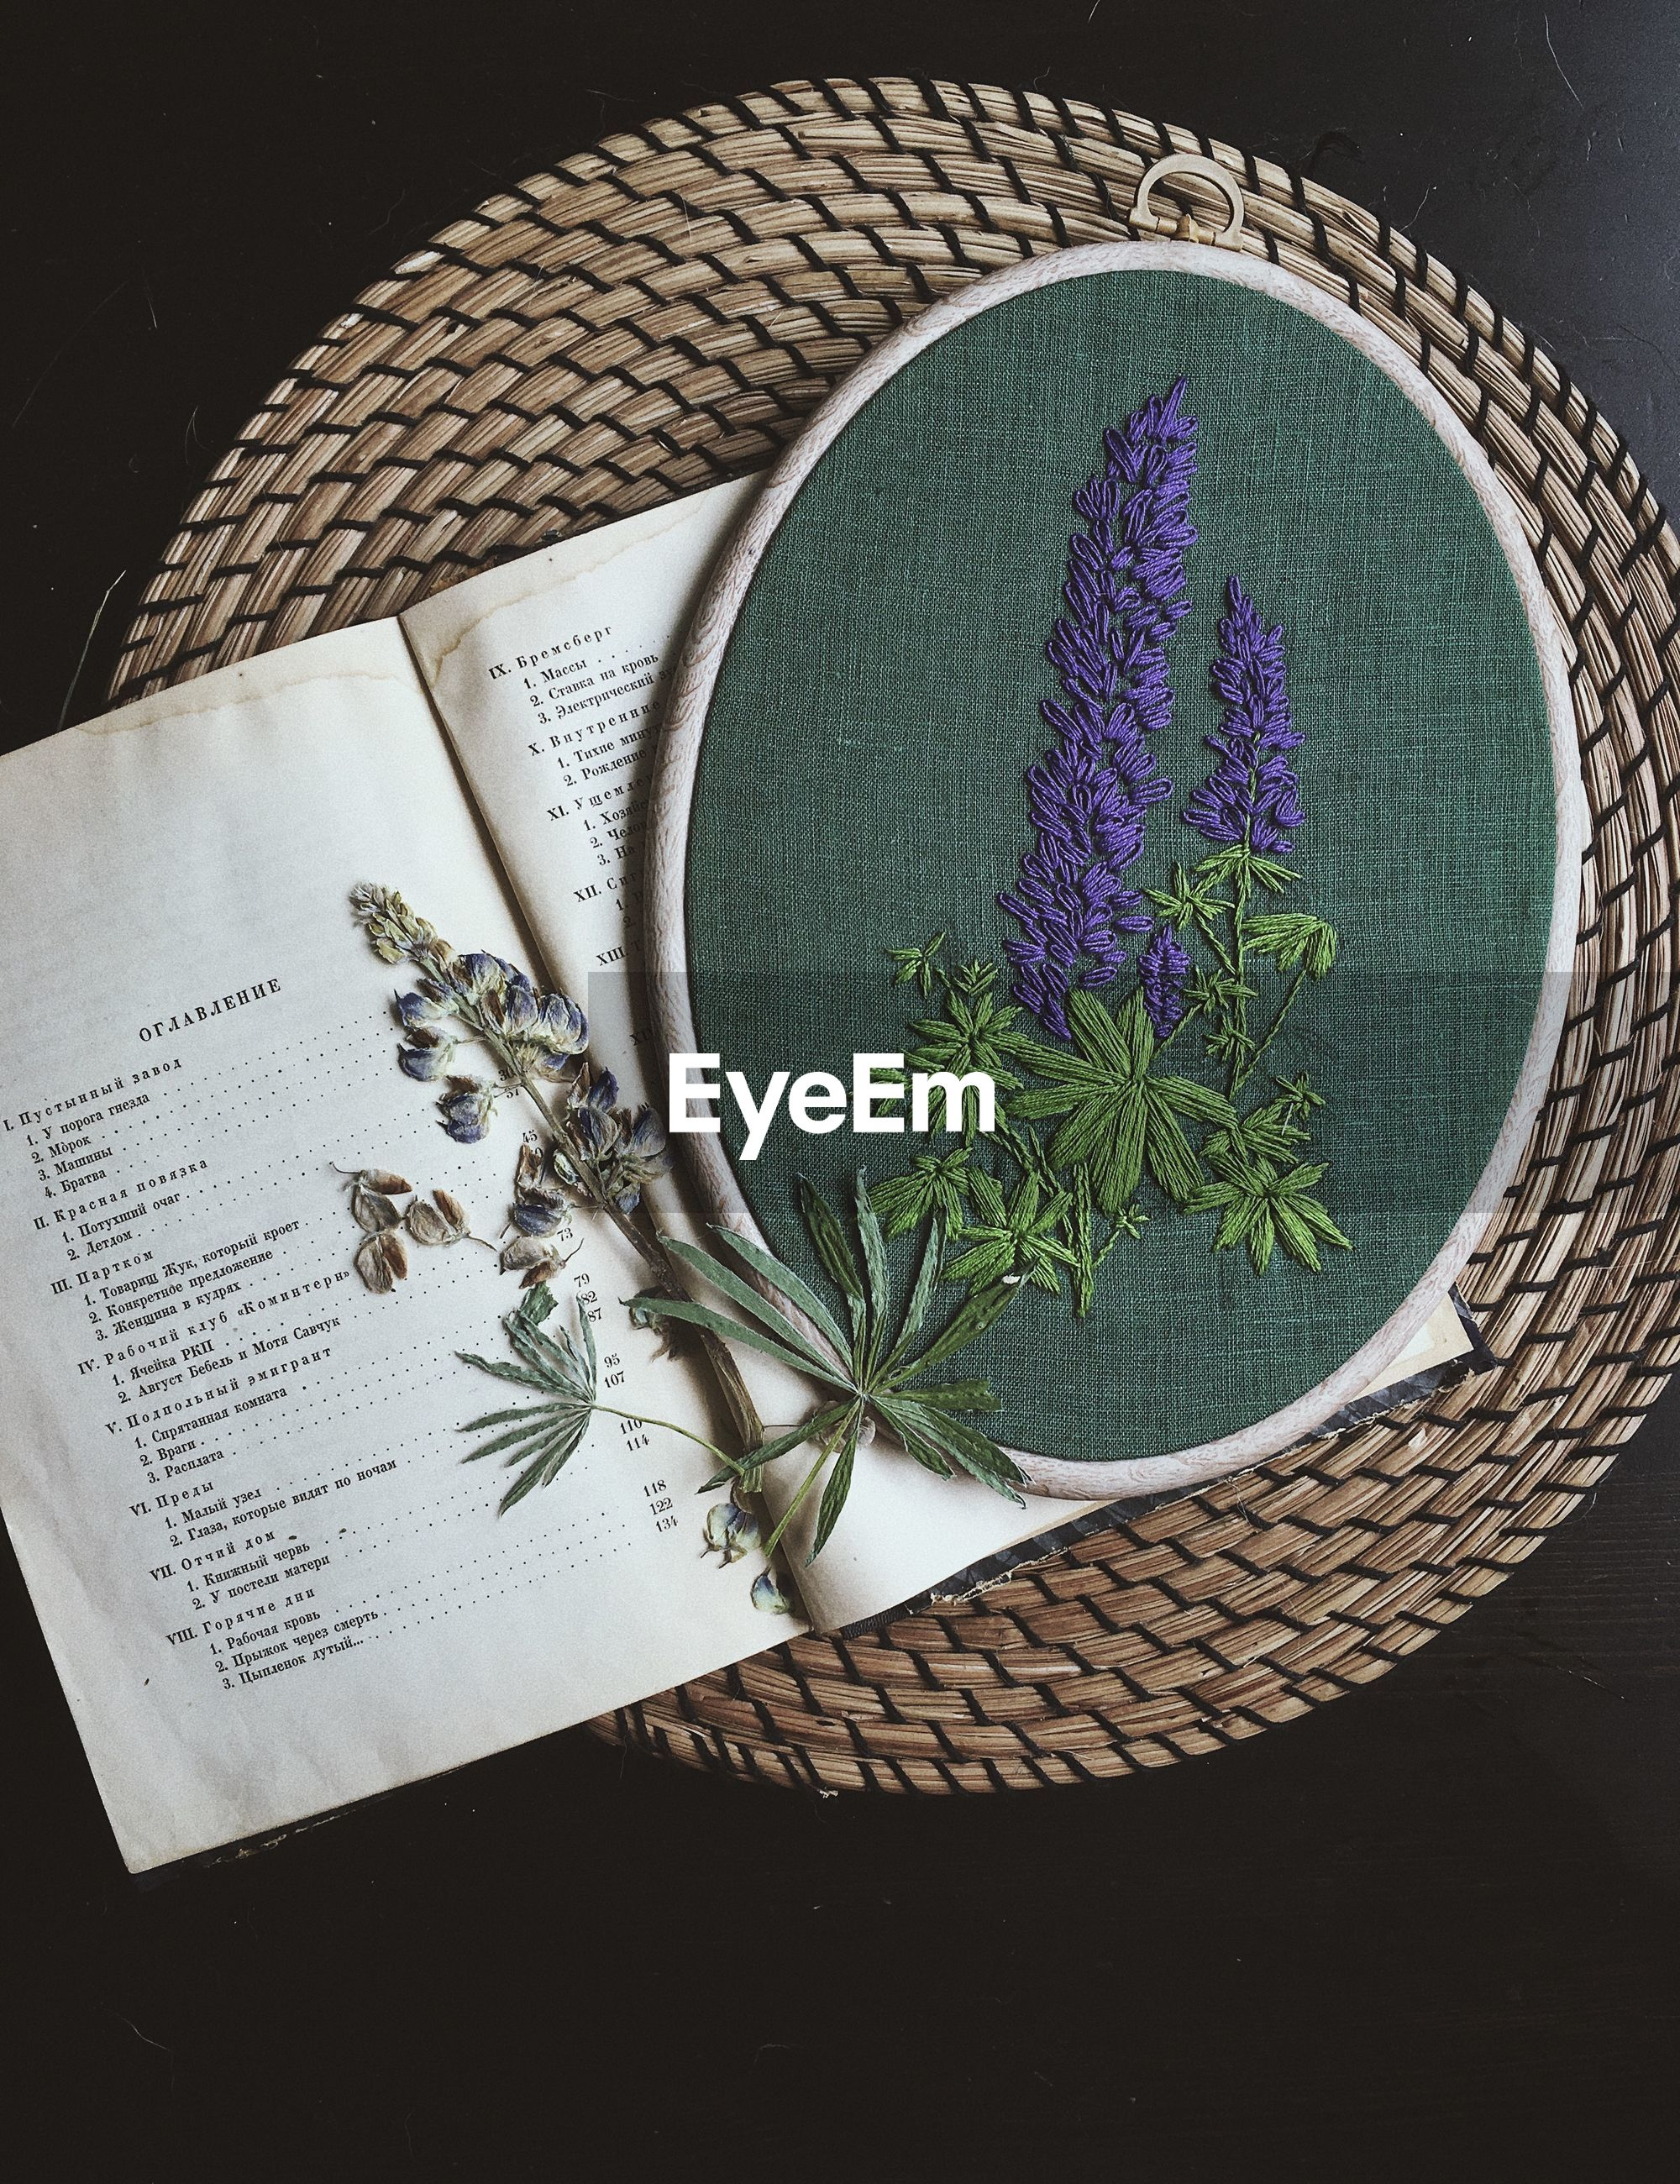 HIGH ANGLE VIEW OF PLANT IN WICKER BASKET ON BOOK